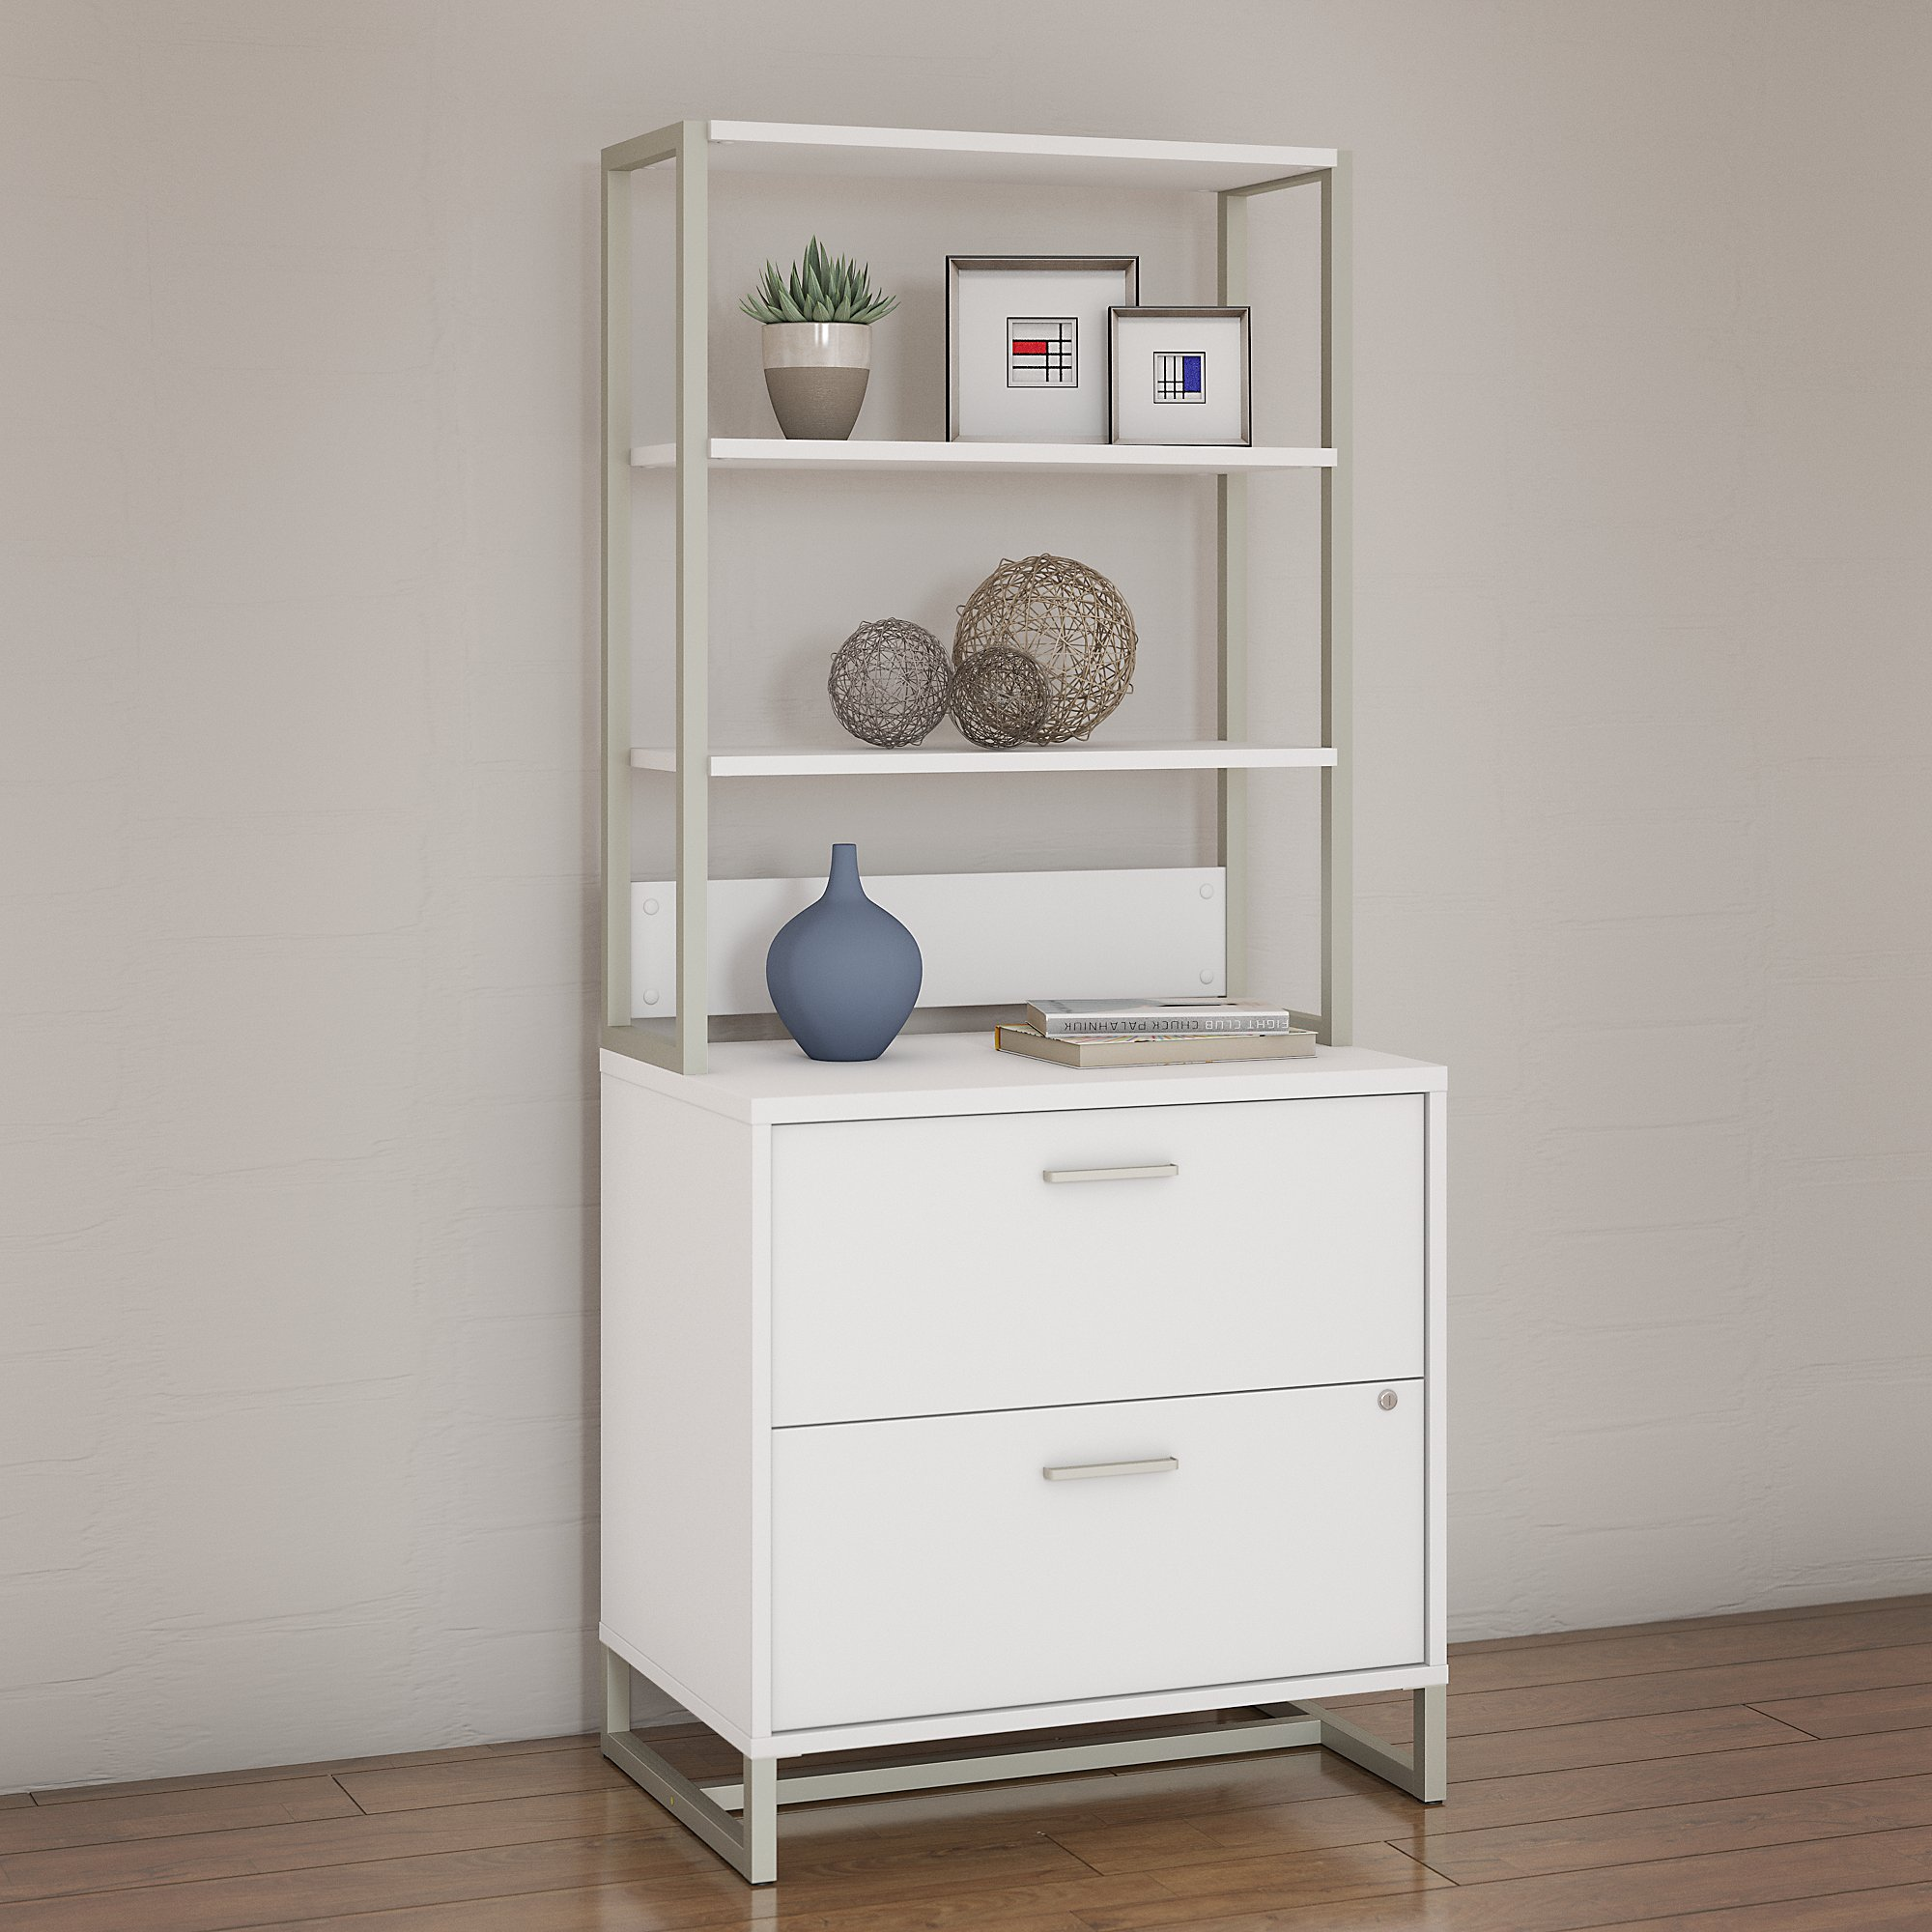 office by kathy ireland wall cabinet in white